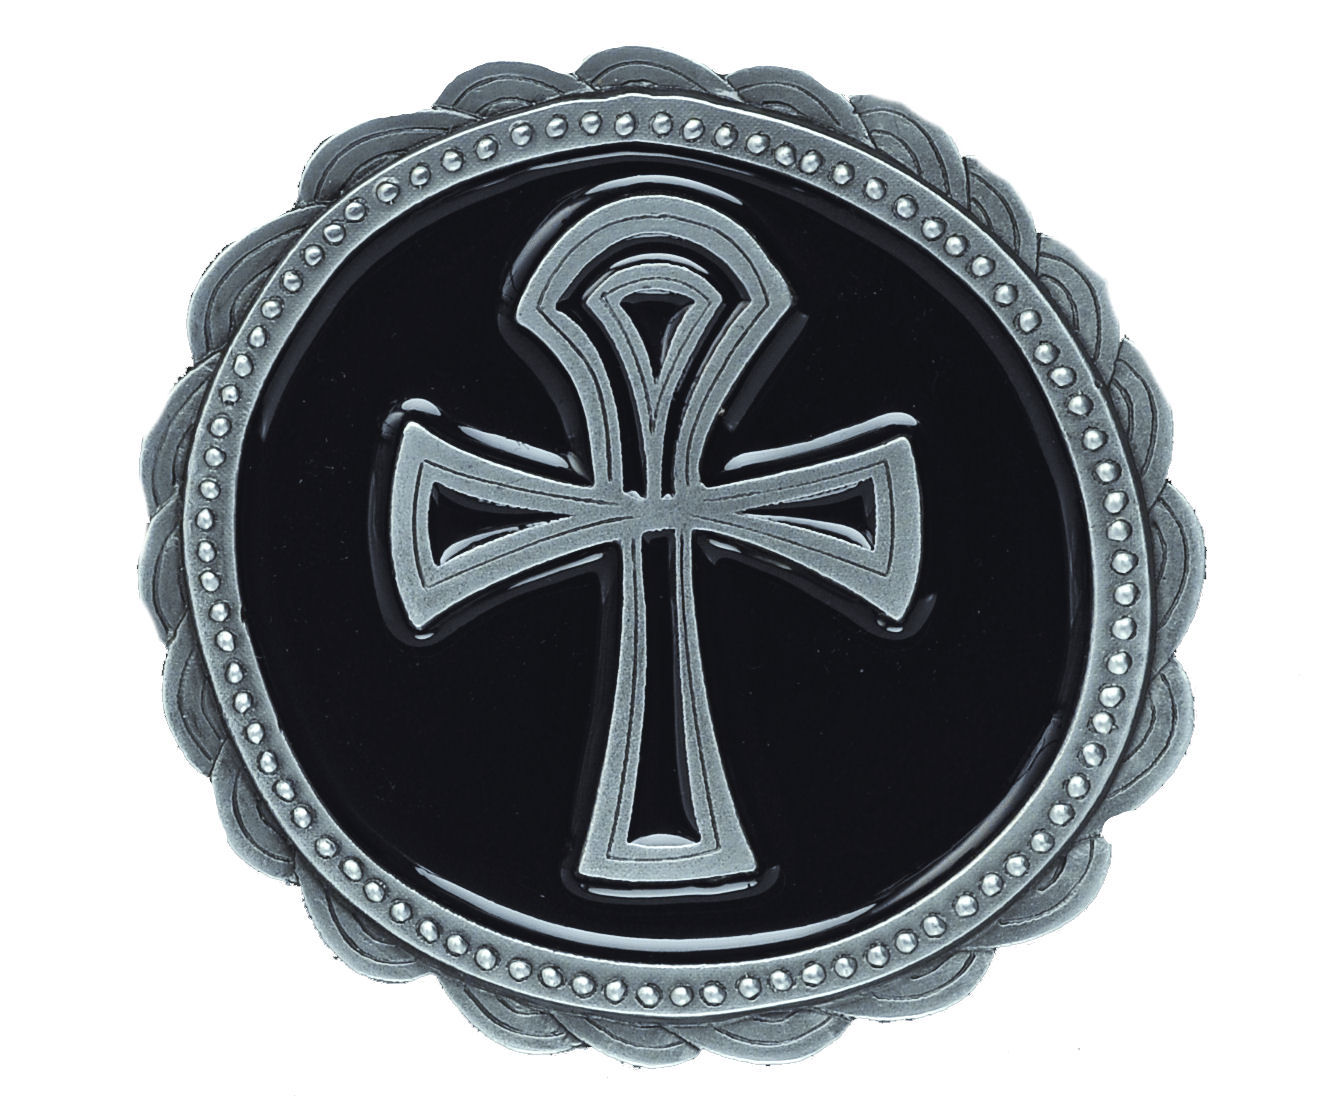 Amon Ankh Cross black Belt Buckle